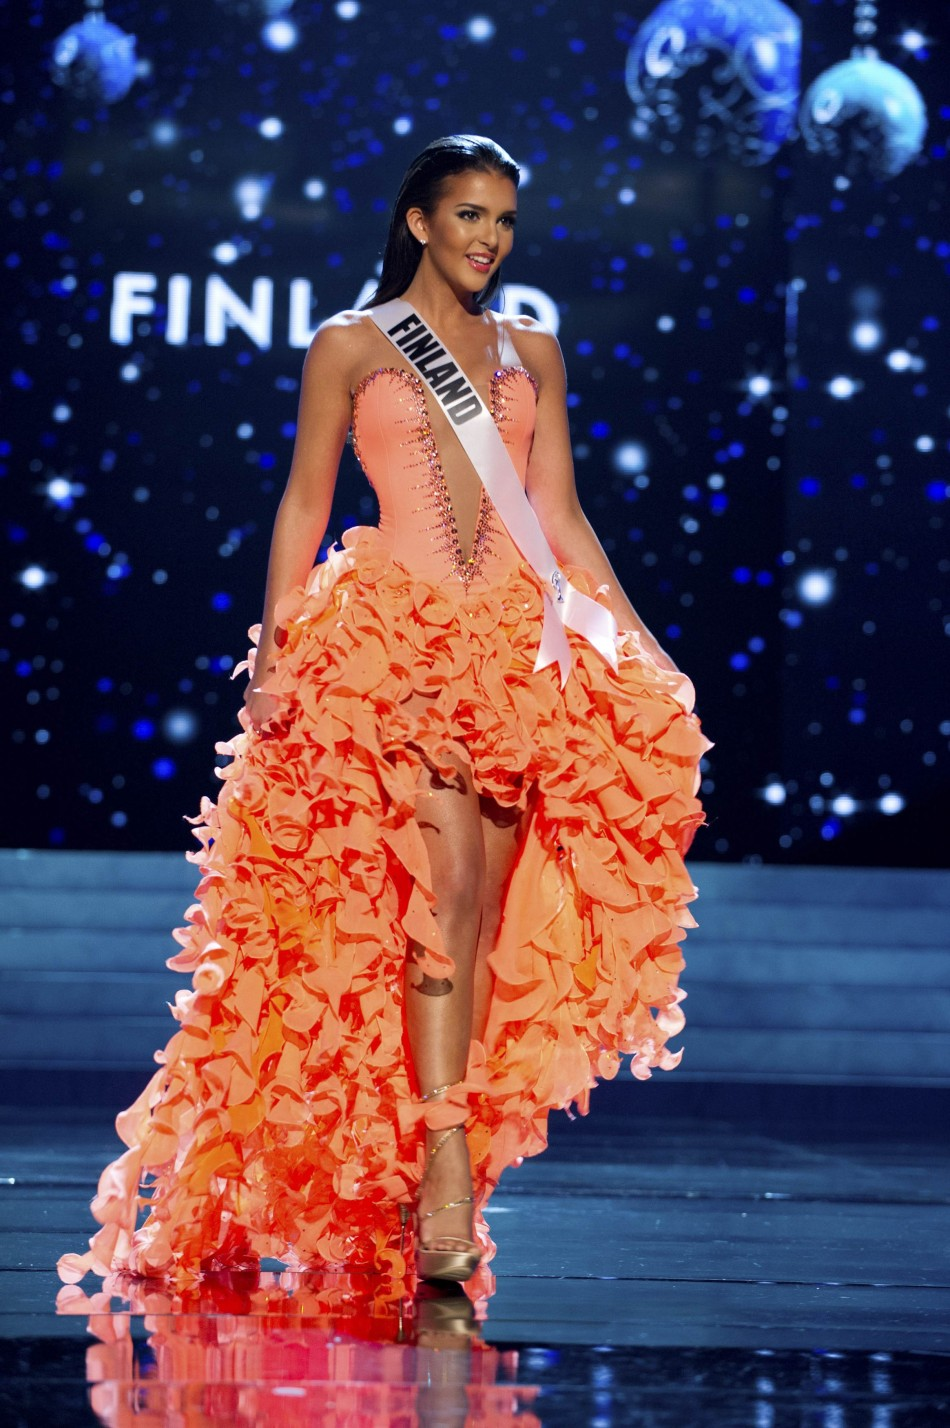 Miss Finland 2012 Chafak competes in an evening gown of her choice during the Evening Gown Competition of the 2012 Miss Universe Presentation Show in Las Vegas